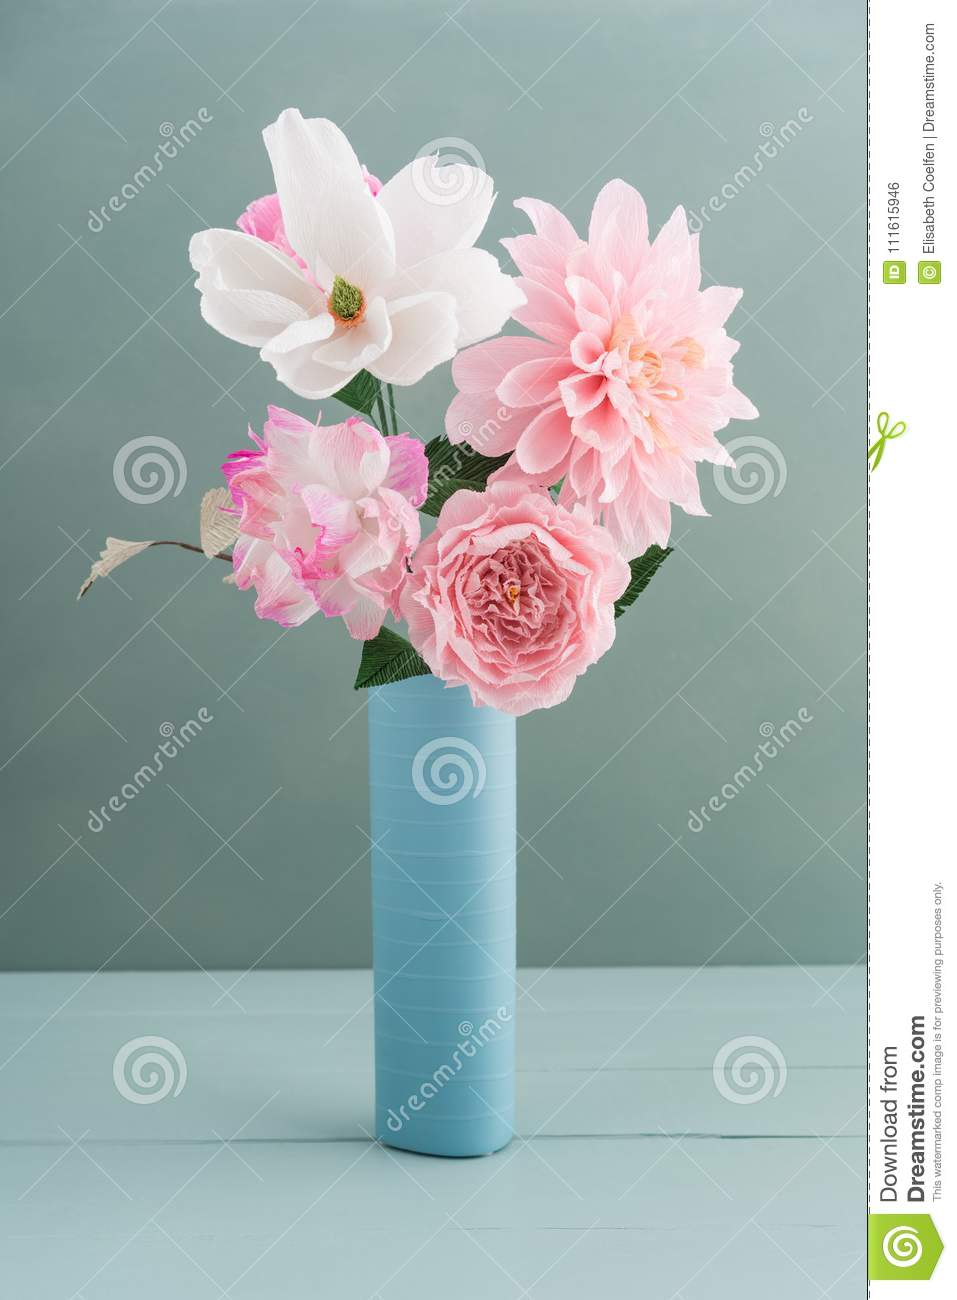 Crepe Paper Flower Bouquet Stock Photo Image Of White 111615946